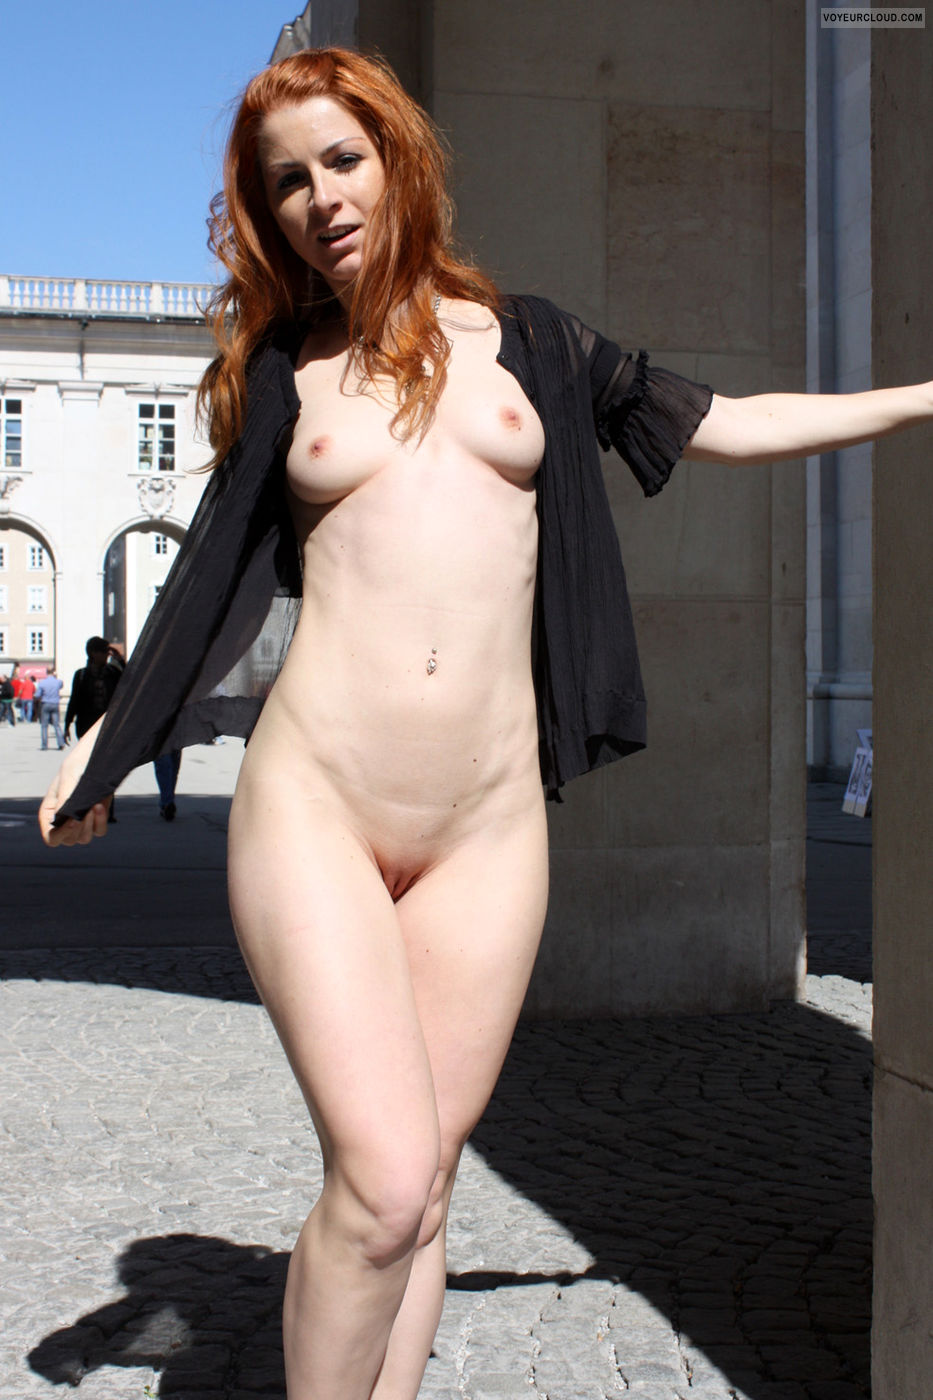 vienna-hot-day-in-salzburg-public-nude-09